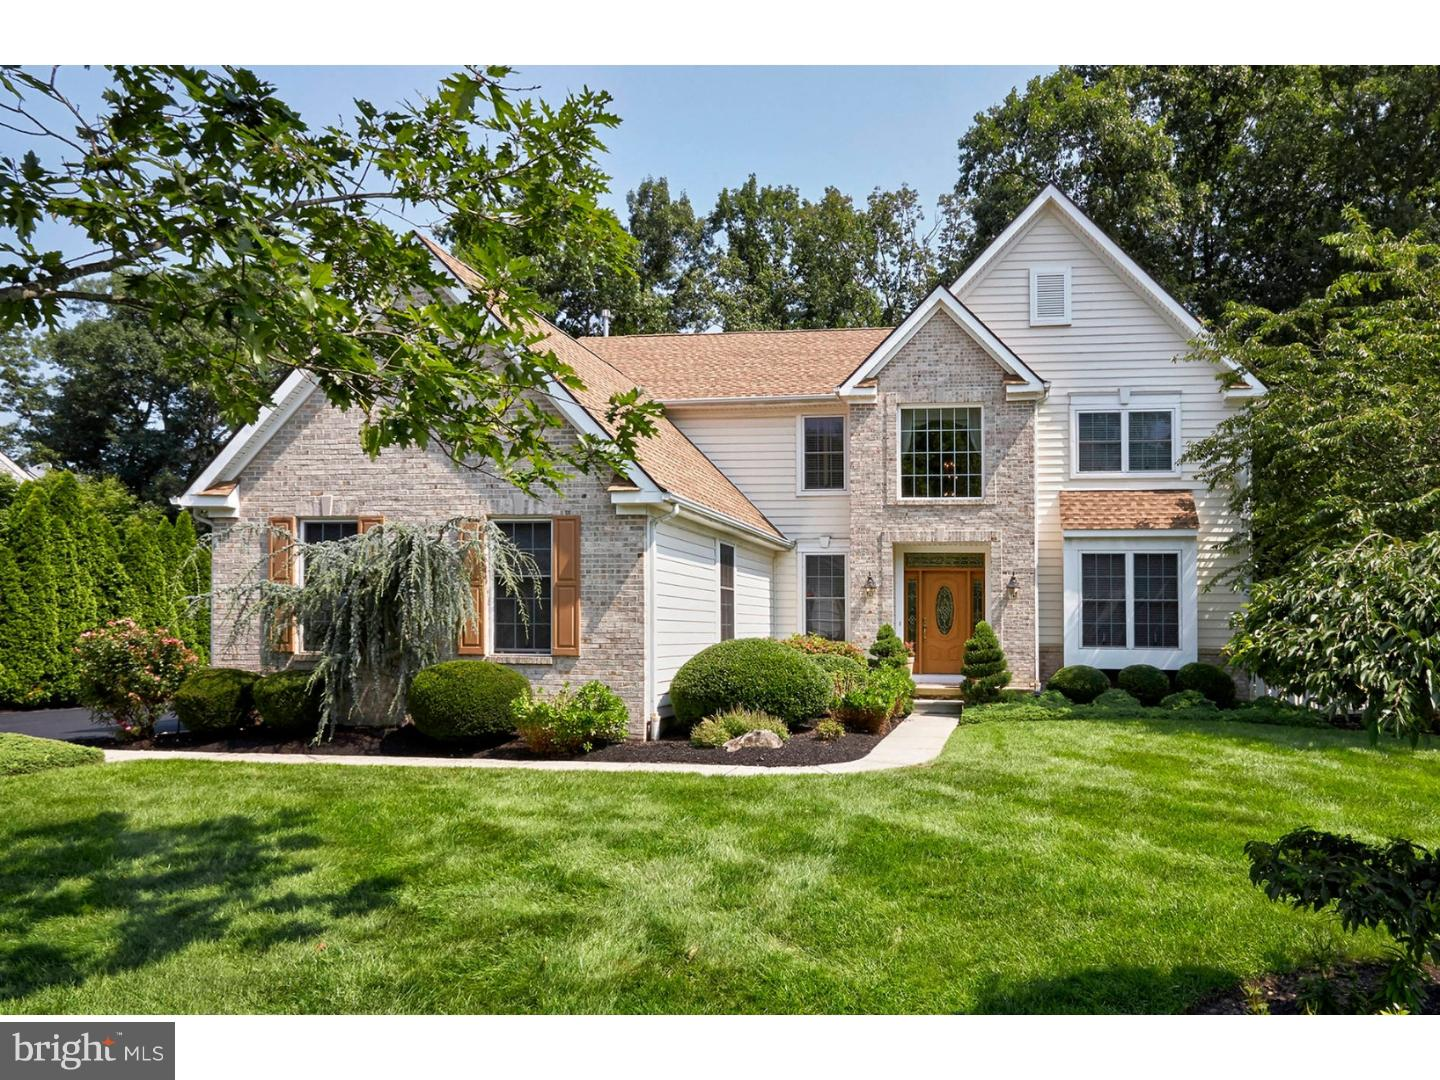 Single Family Home for Sale at 118 MASON WOODS Lane Hainesport, New Jersey 08036 United States